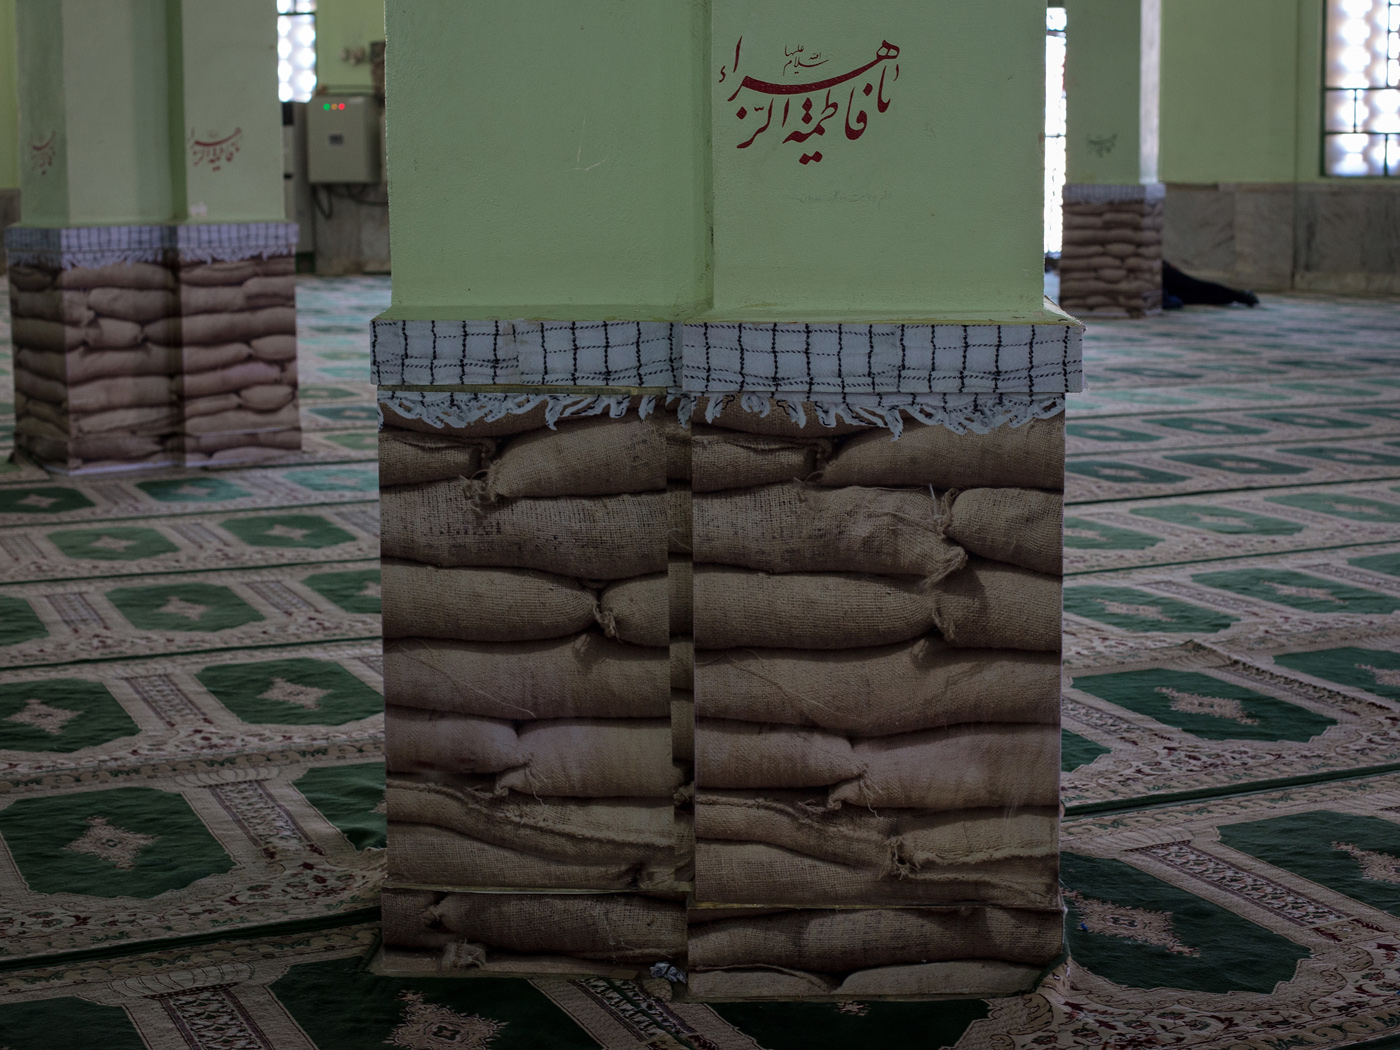 Decoration of pillars at a memorial mosque depict sand sacks which were used to protect trenches reminding of the Iran-Iraq war.